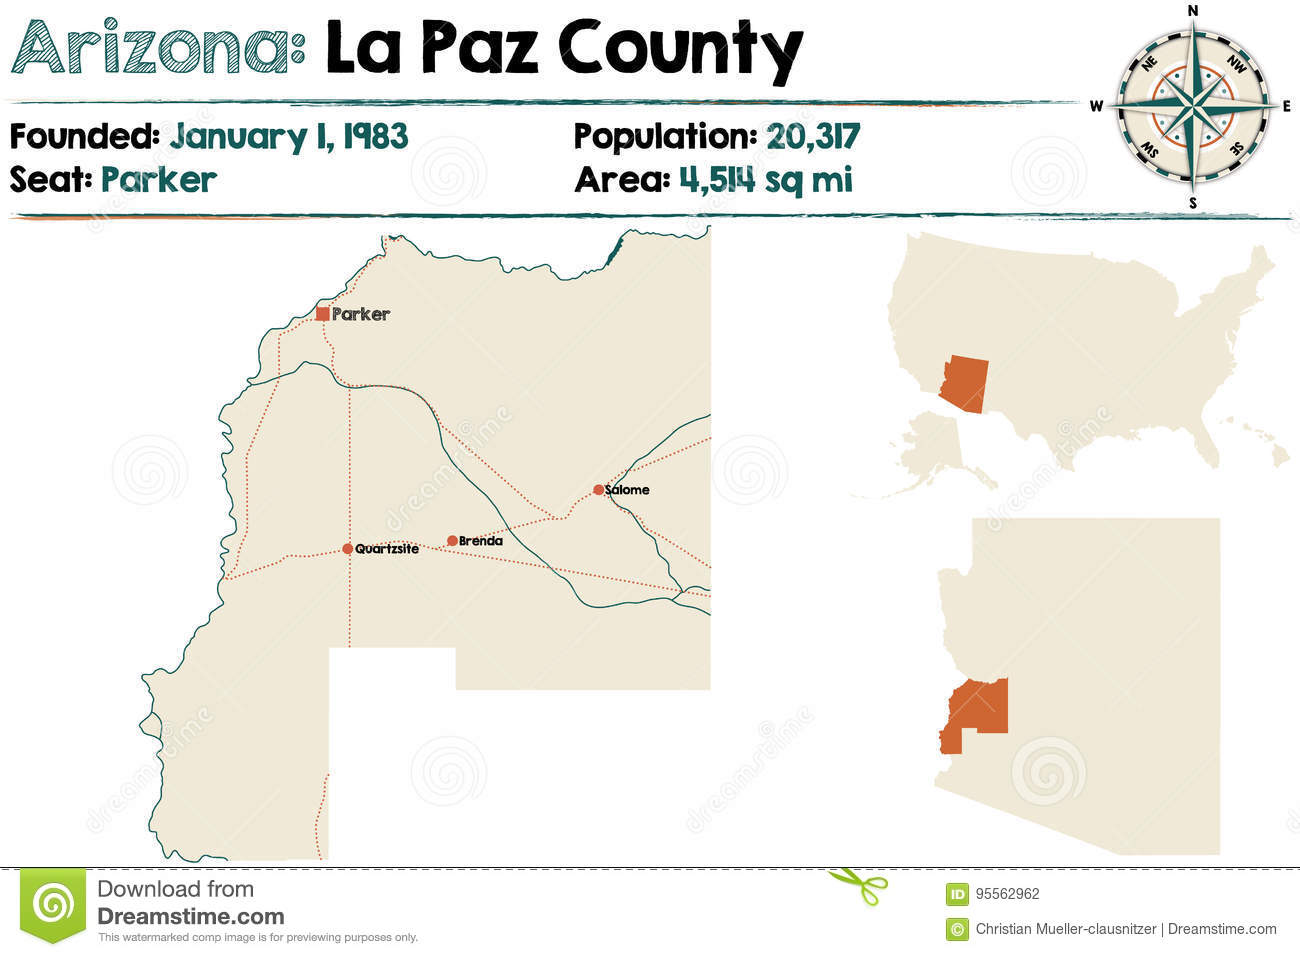 singles in la paz county Investigators hadn't found any link between lynch and the la paz county property or anybody else associated with the property, said sheriff's lt curt bagby, spokesman for the la paz county .